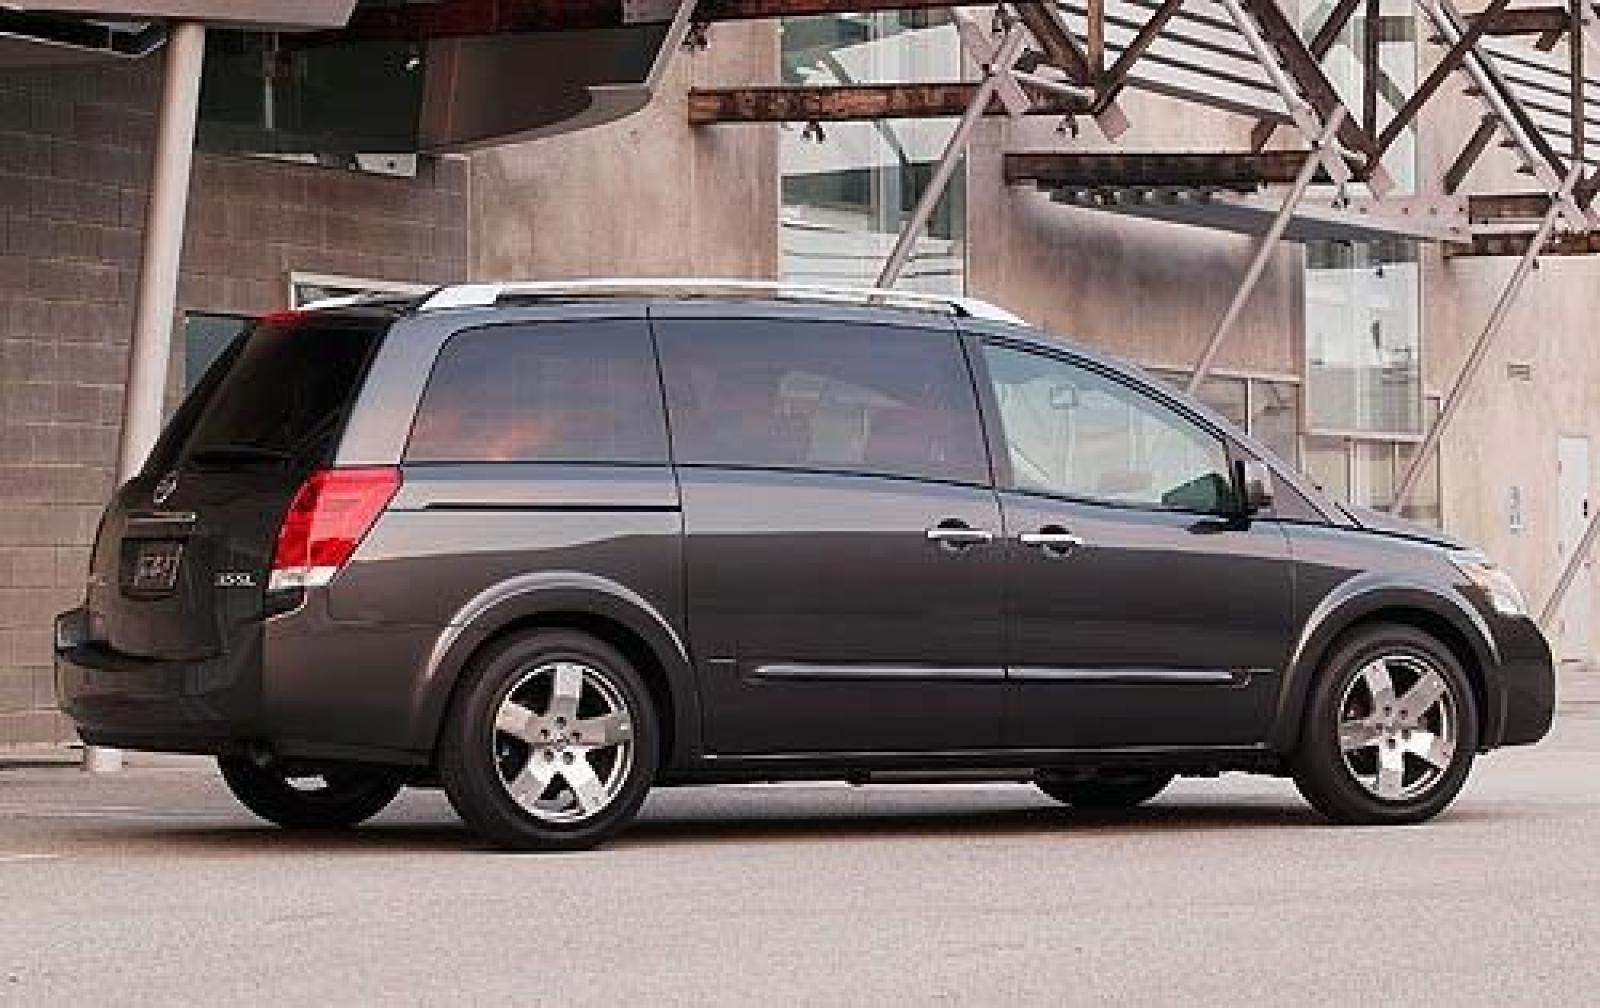 2009 nissan quest information and photos zombiedrive 800 1024 1280 1600 origin 2009 nissan quest vanachro Gallery